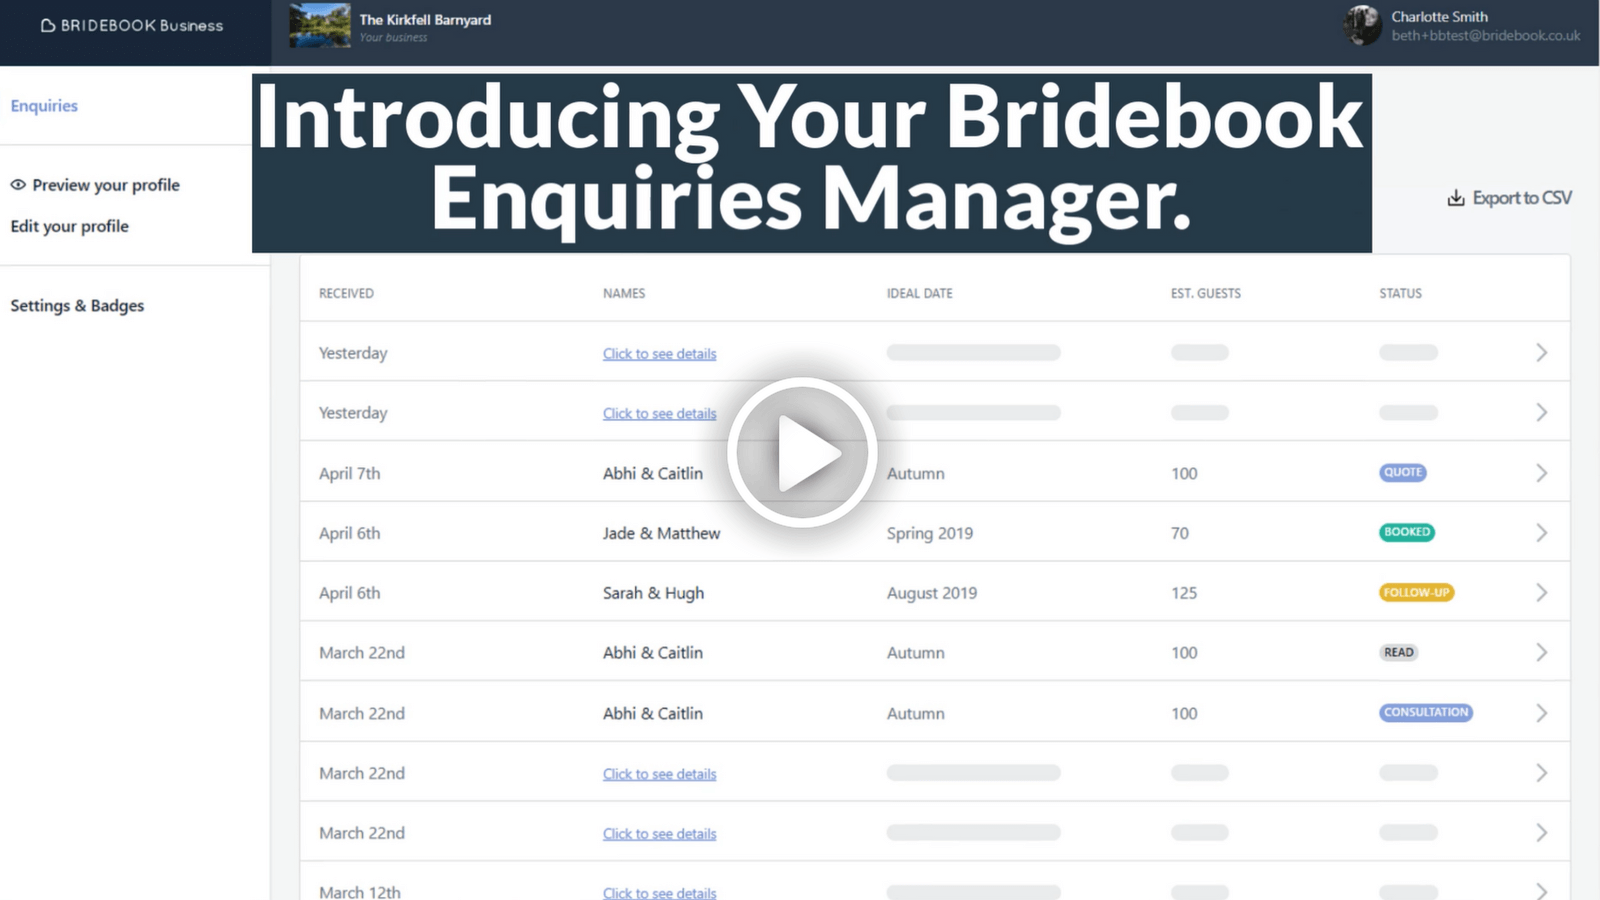 Bridebook.co.uk gives wedding industry professionals the tools they need to market and grow their wedding businesses